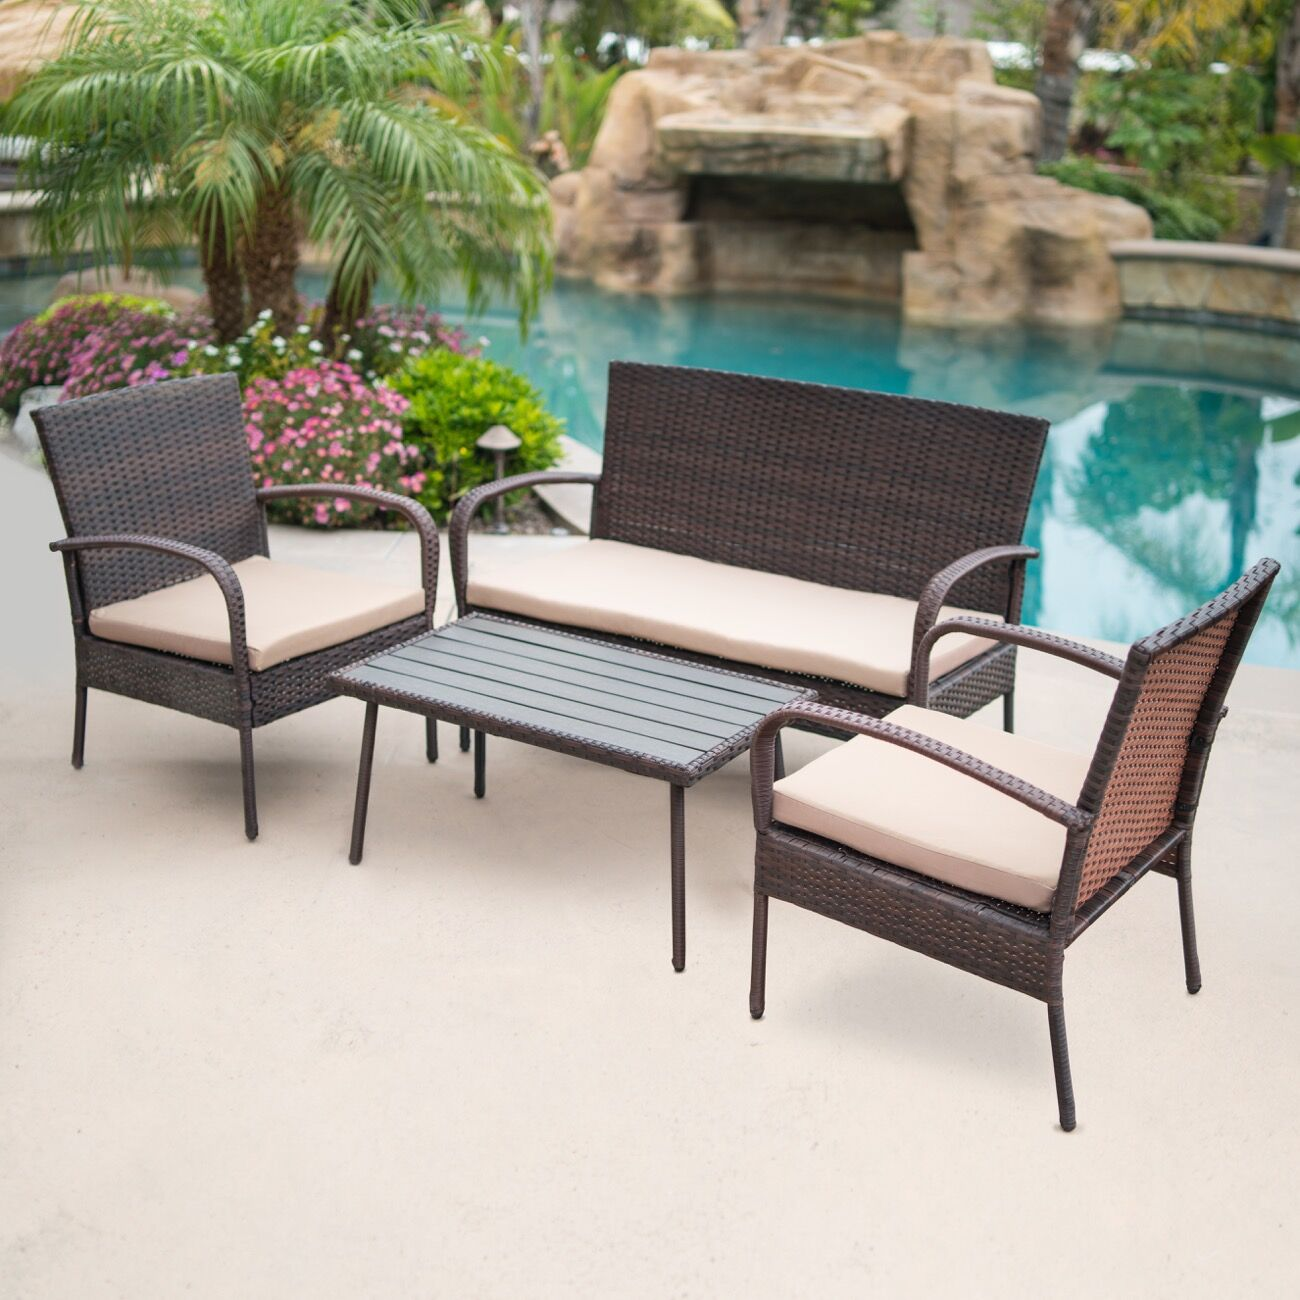 Reed 4 Piece Rattan Conversation Set with Cushions Cushion Color: Brown